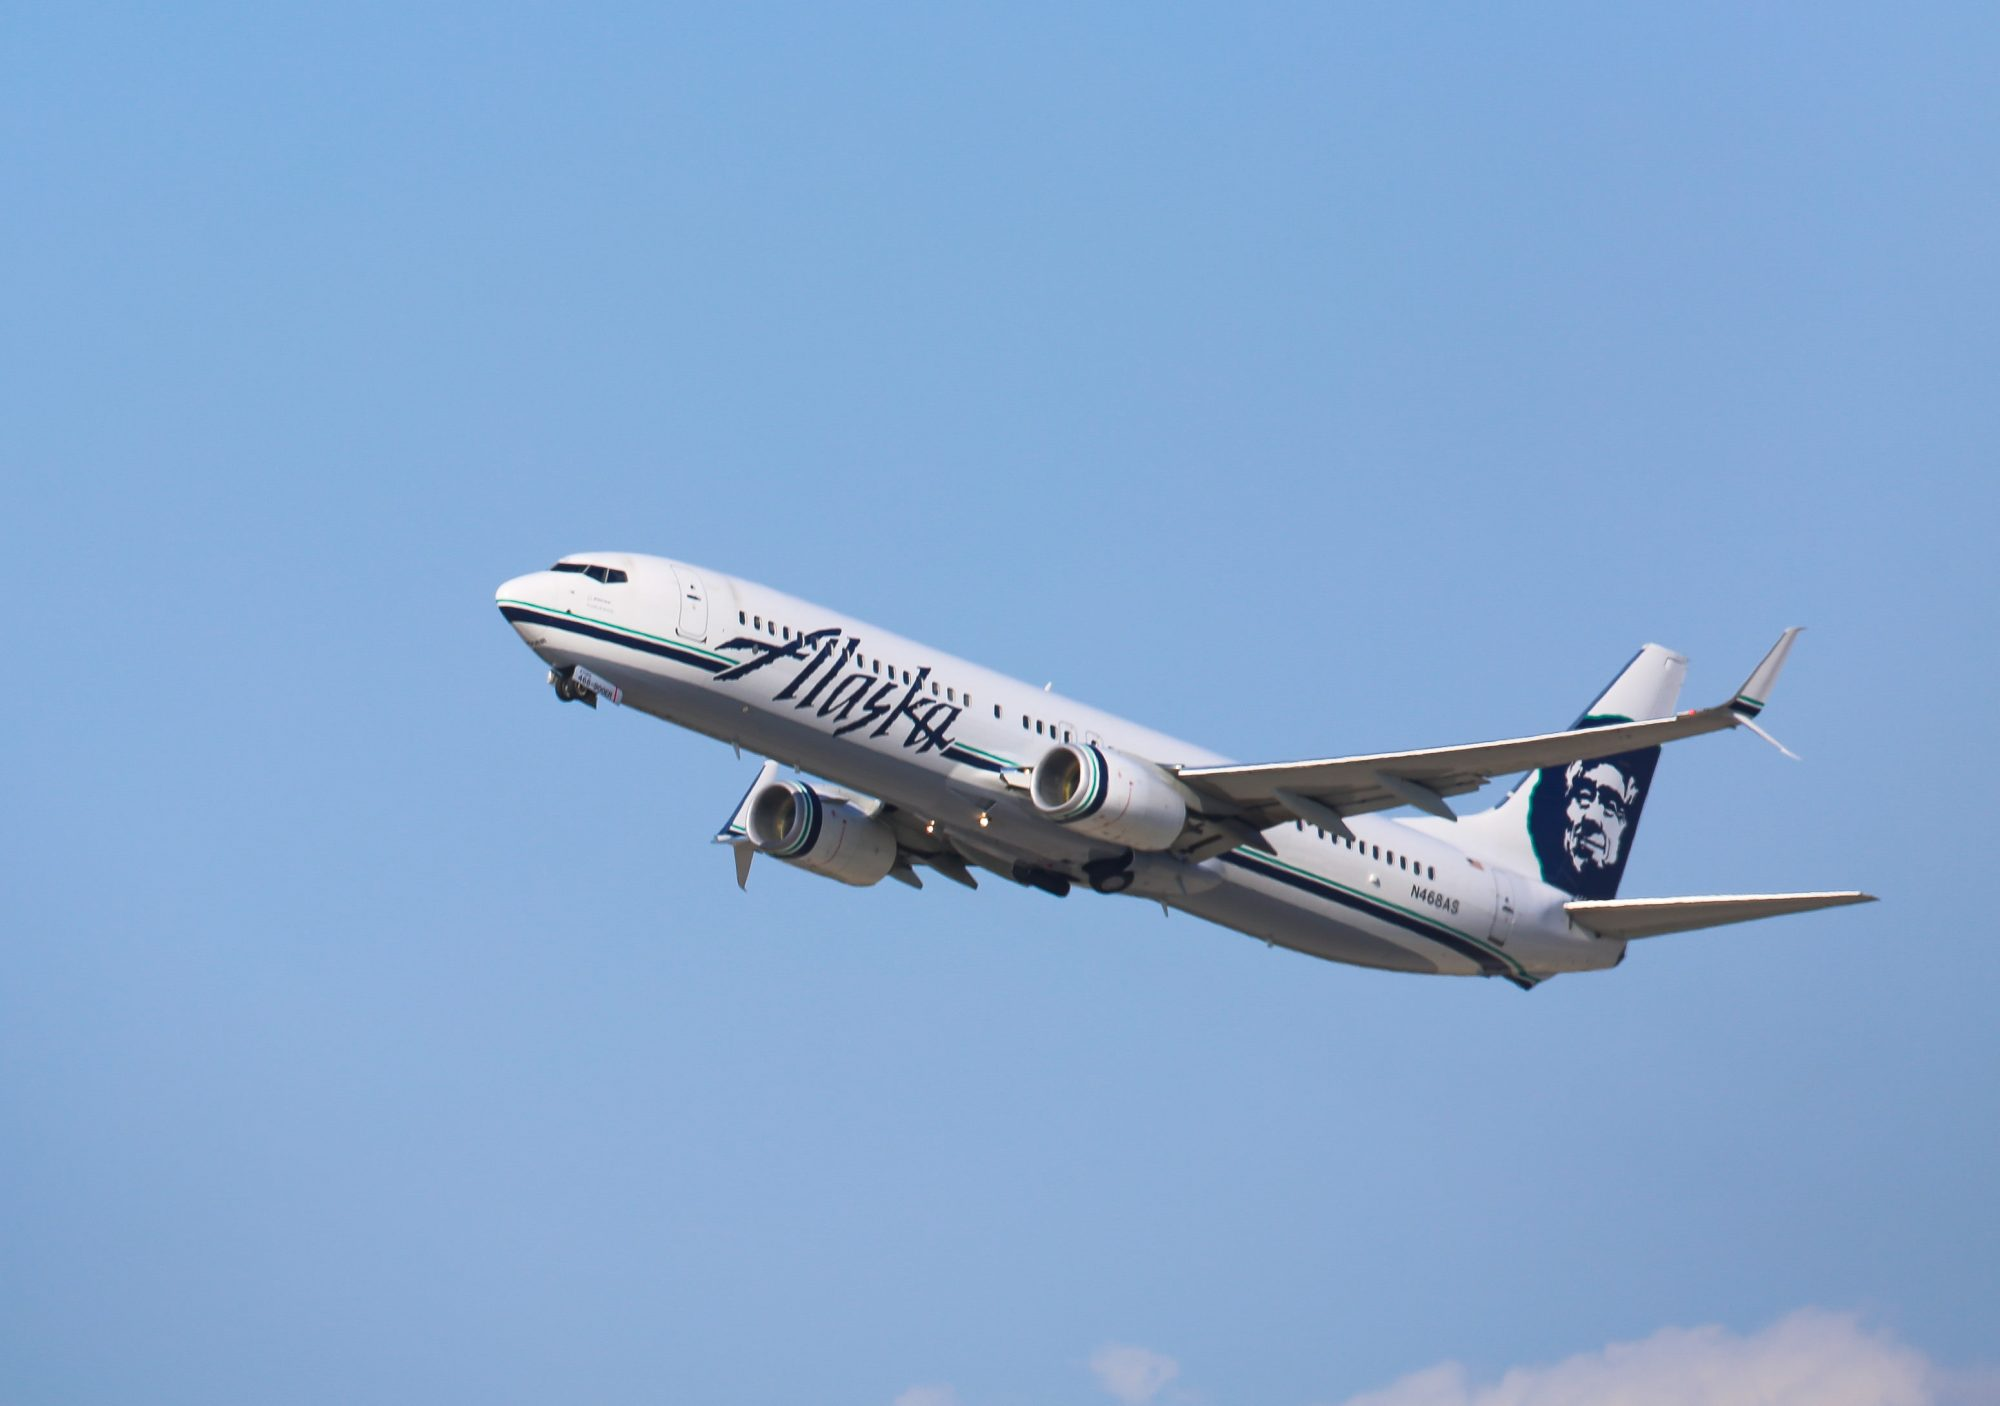 Alaska Airlines Boeing 737 is seen taking off from LAX on October 03, 2016 in Los Angeles, California.